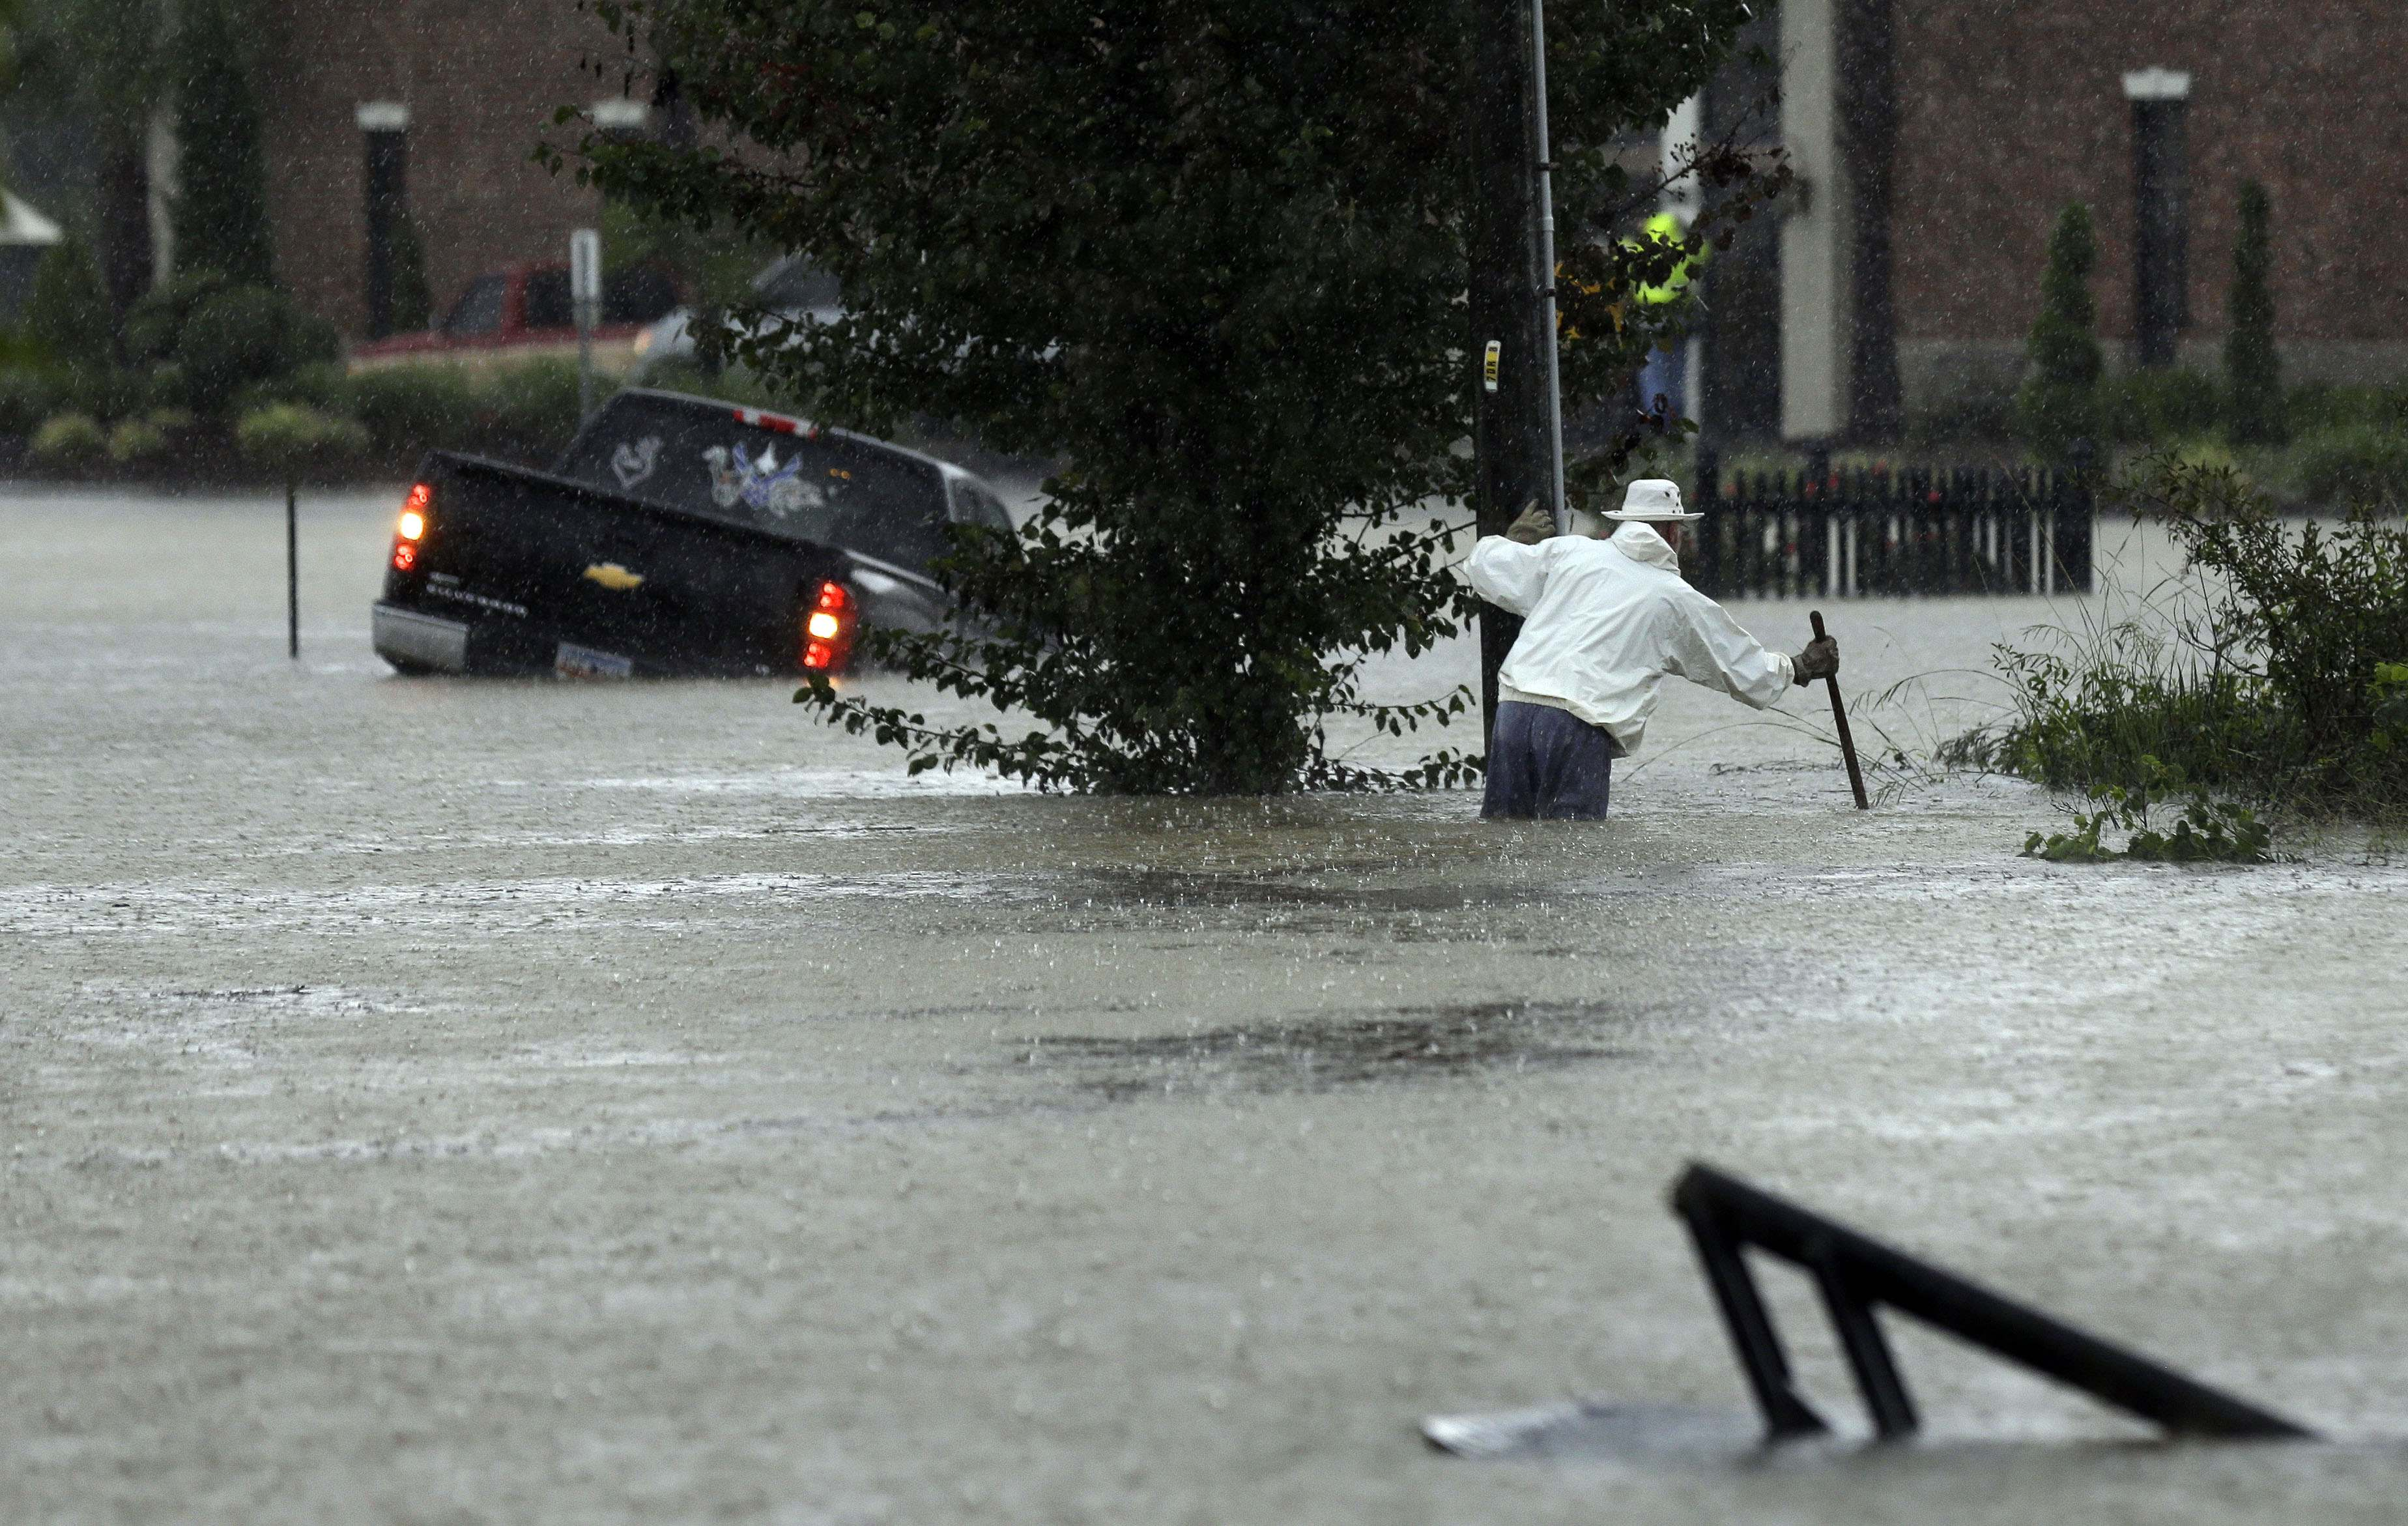 A vehicle and a man try to navigate floodwaters in Florence, S.C., Sunday, Oct. 4, 2015, as heavy rain continues to cause widespread flooding